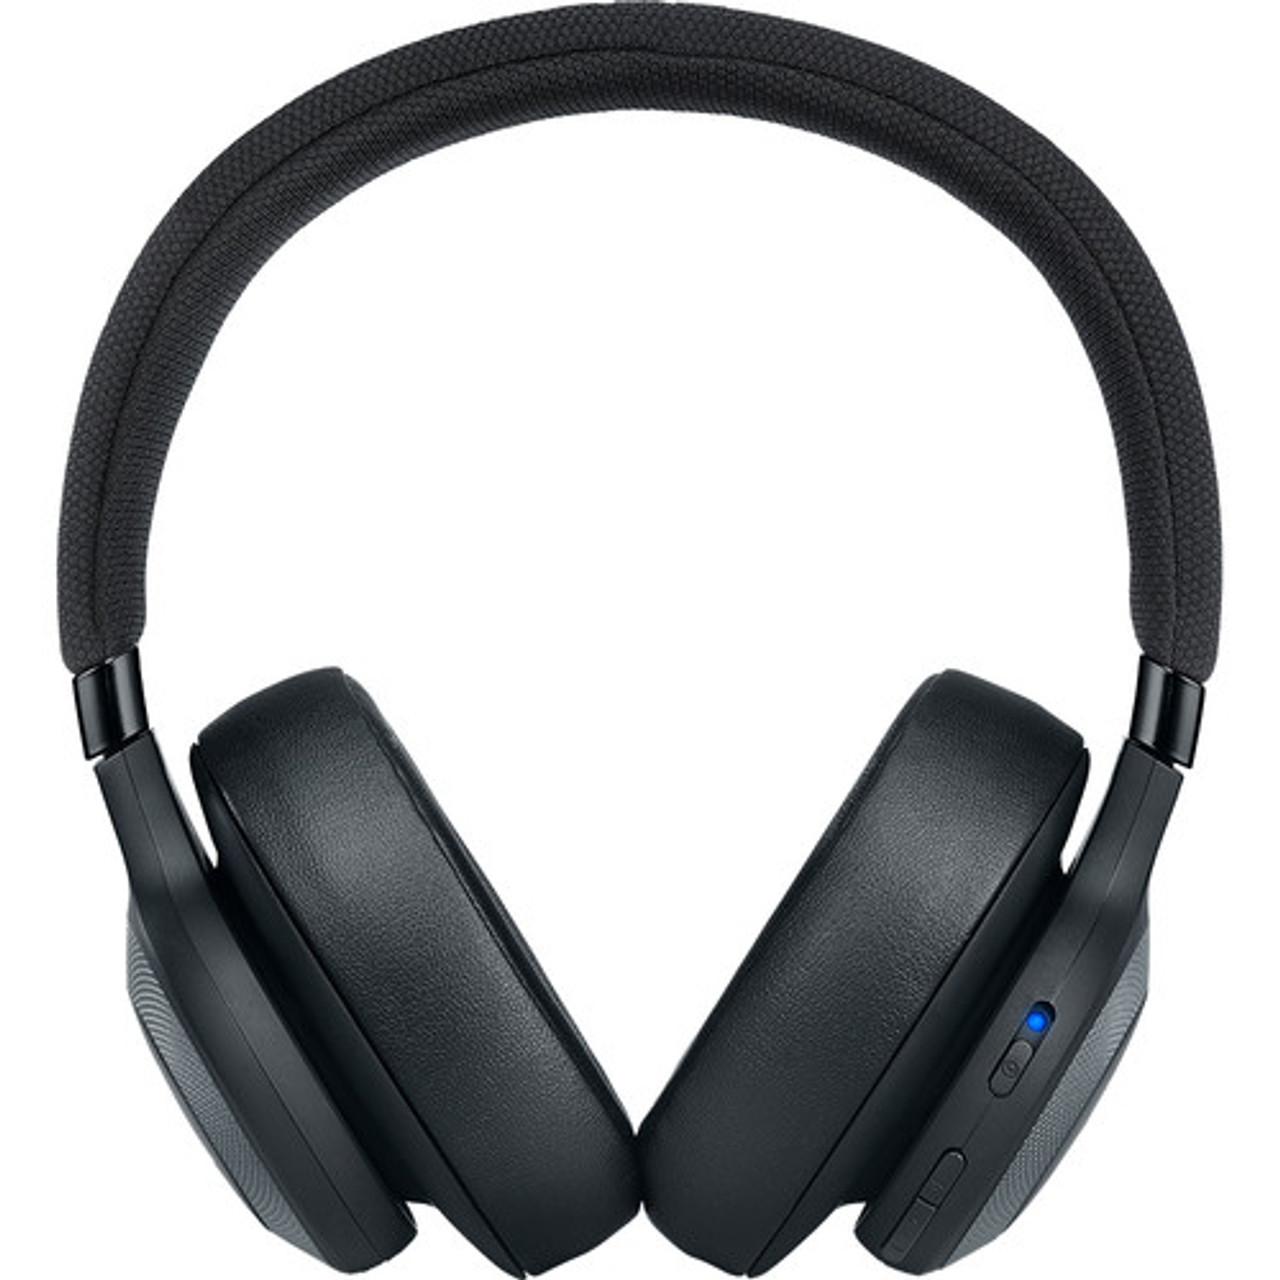 Jbl Jble65btncblk Z Bluetooth Over Ear Noise Canceling Headphones Matte Black Certified Refurbished Deal Parade